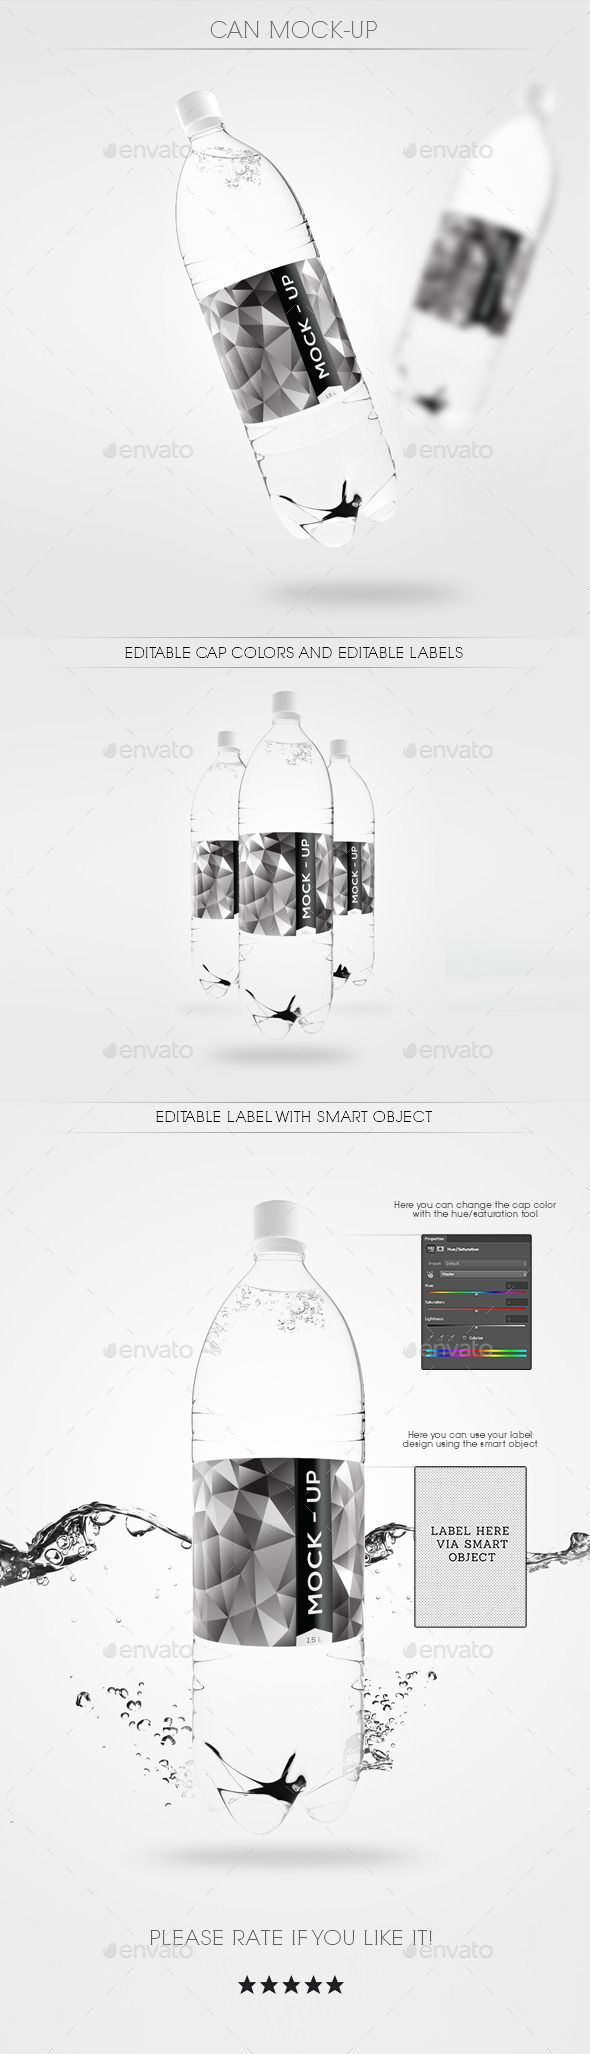 20 best Mock Up images on Pinterest | Label design, Font logo and ...